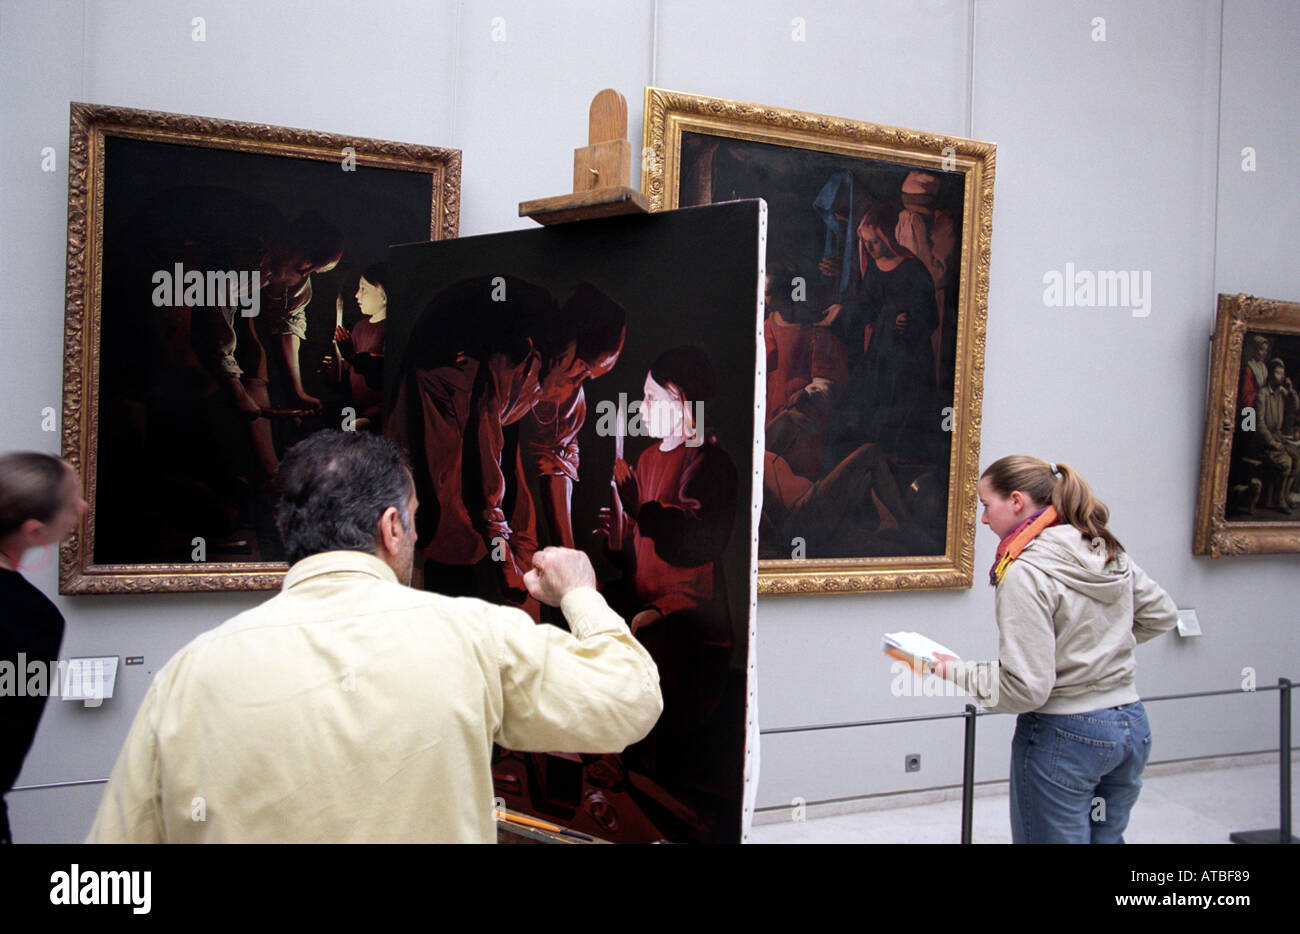 An artist copies a painting in the Louvre museum in Paris France - Stock Image